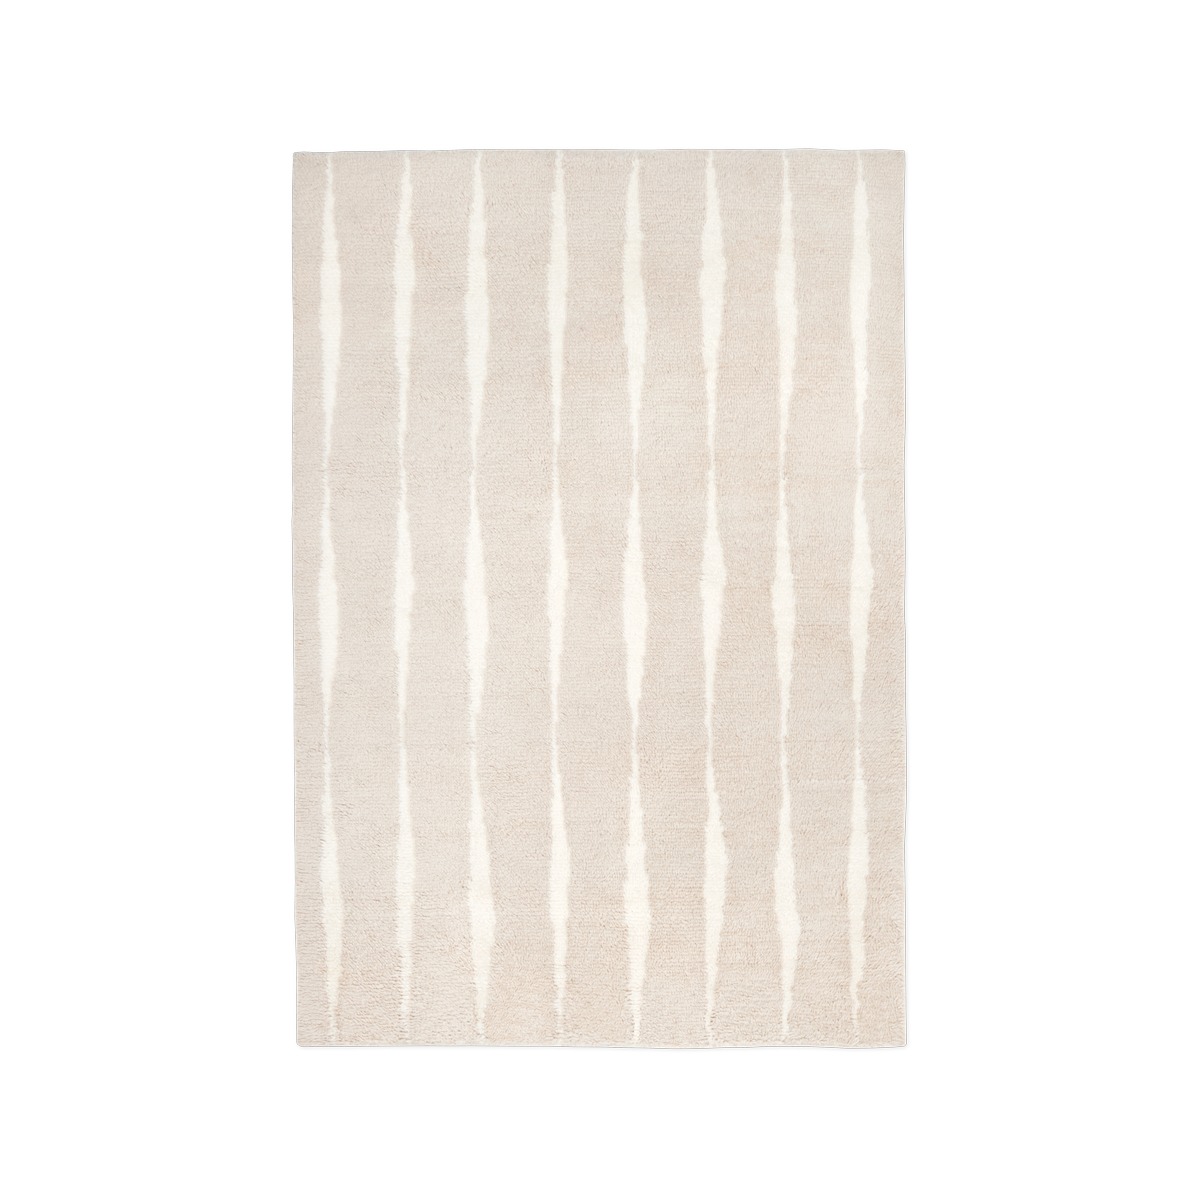 Product image of the shaggy rug Fjord in the color Pale Sand.